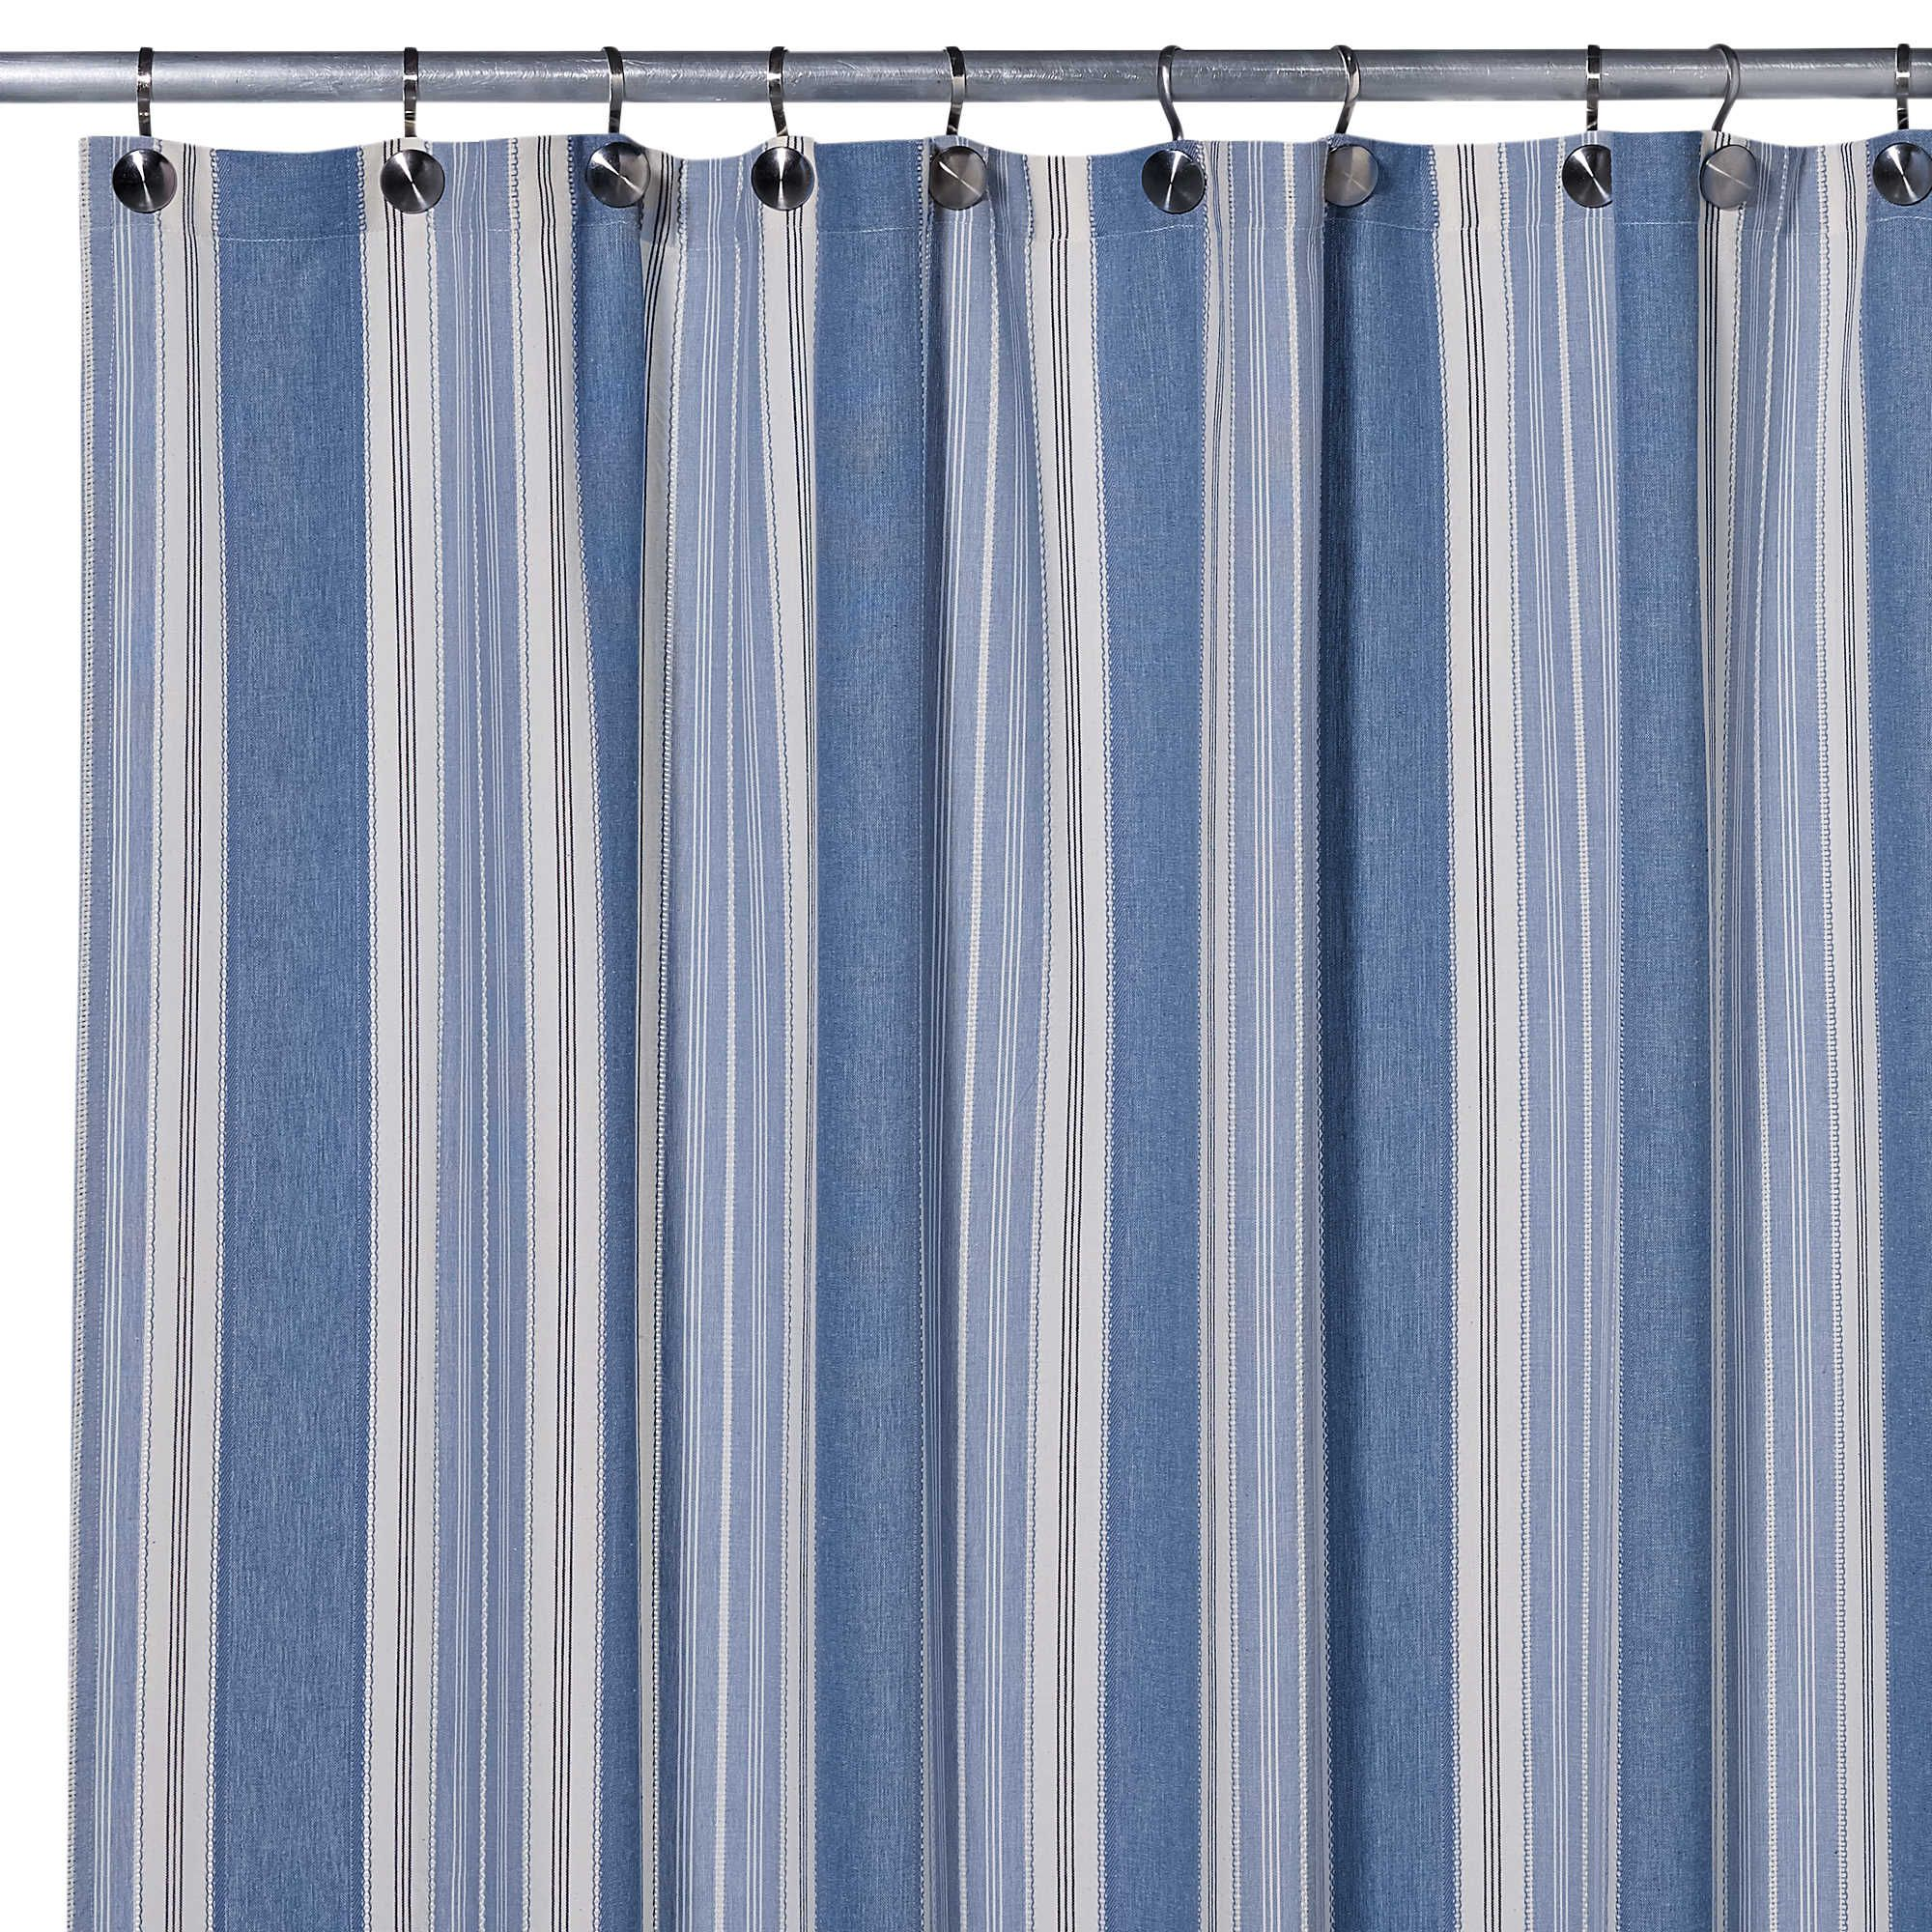 Blue Savannah 72 Inch X 96 Inch Shower Curtain Curtains Shower Curtain 96 Inch Shower Curtain